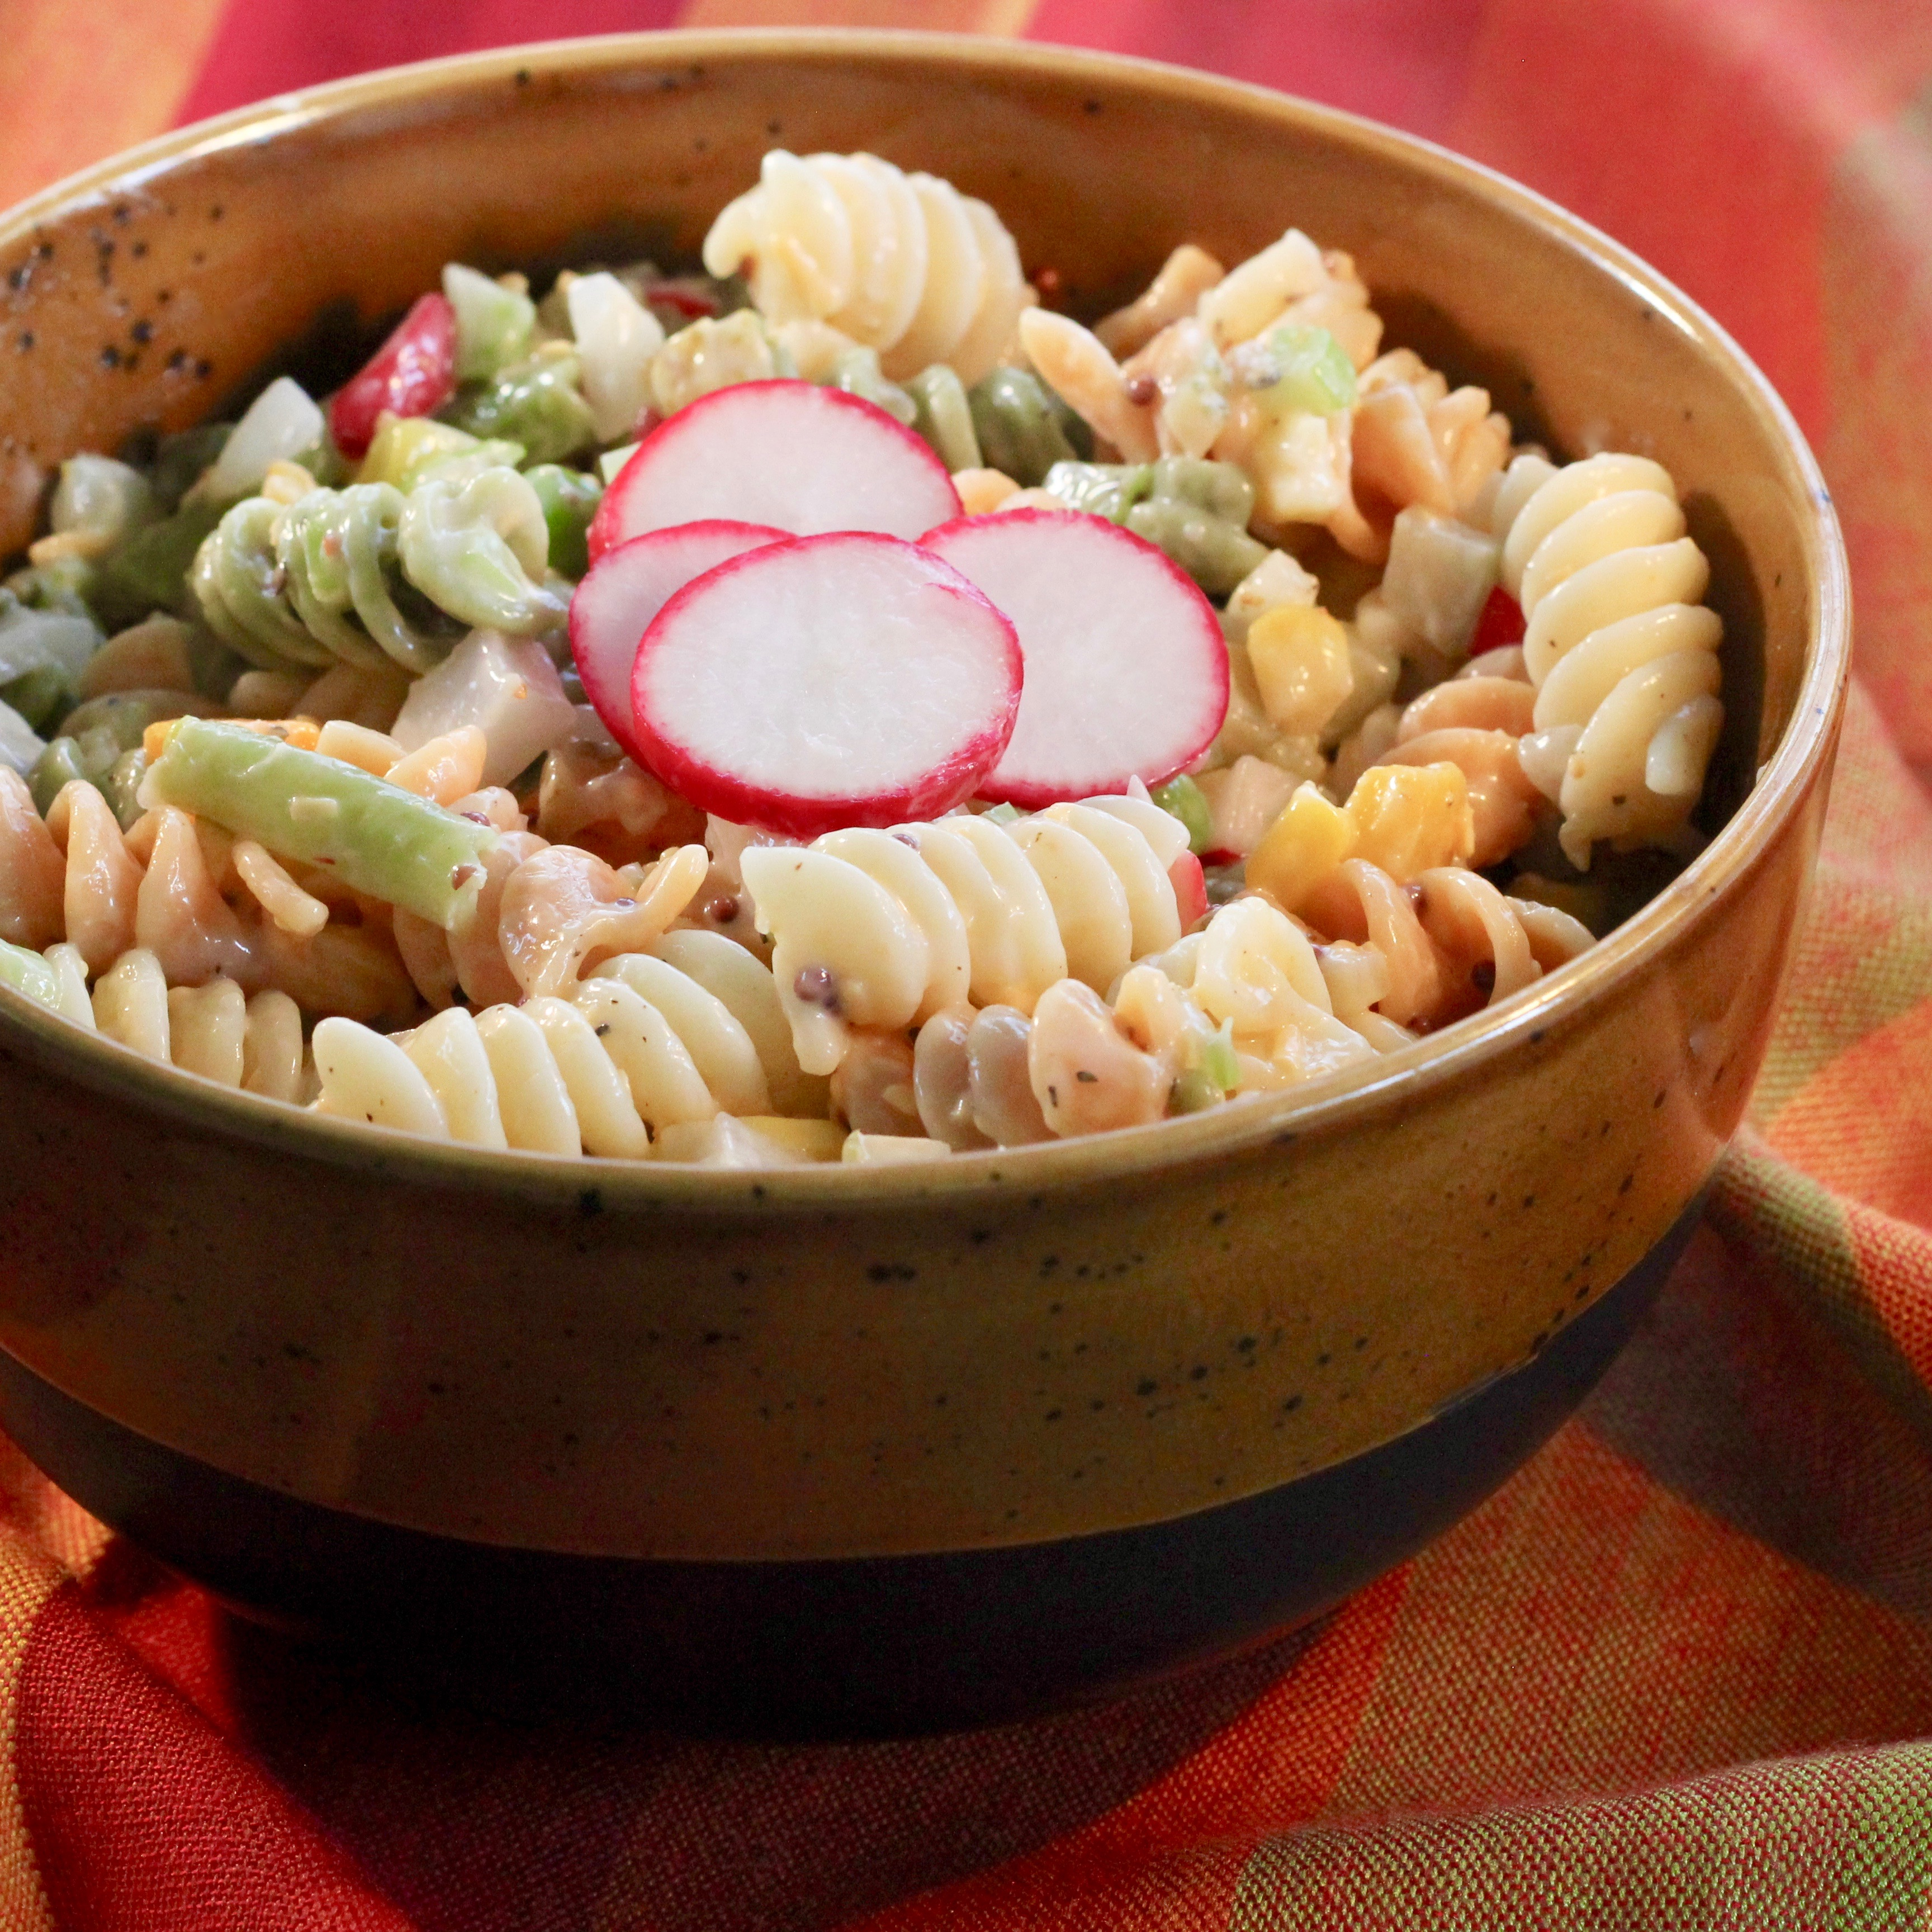 Fiesta Pasta Salad with Dill Pickles image